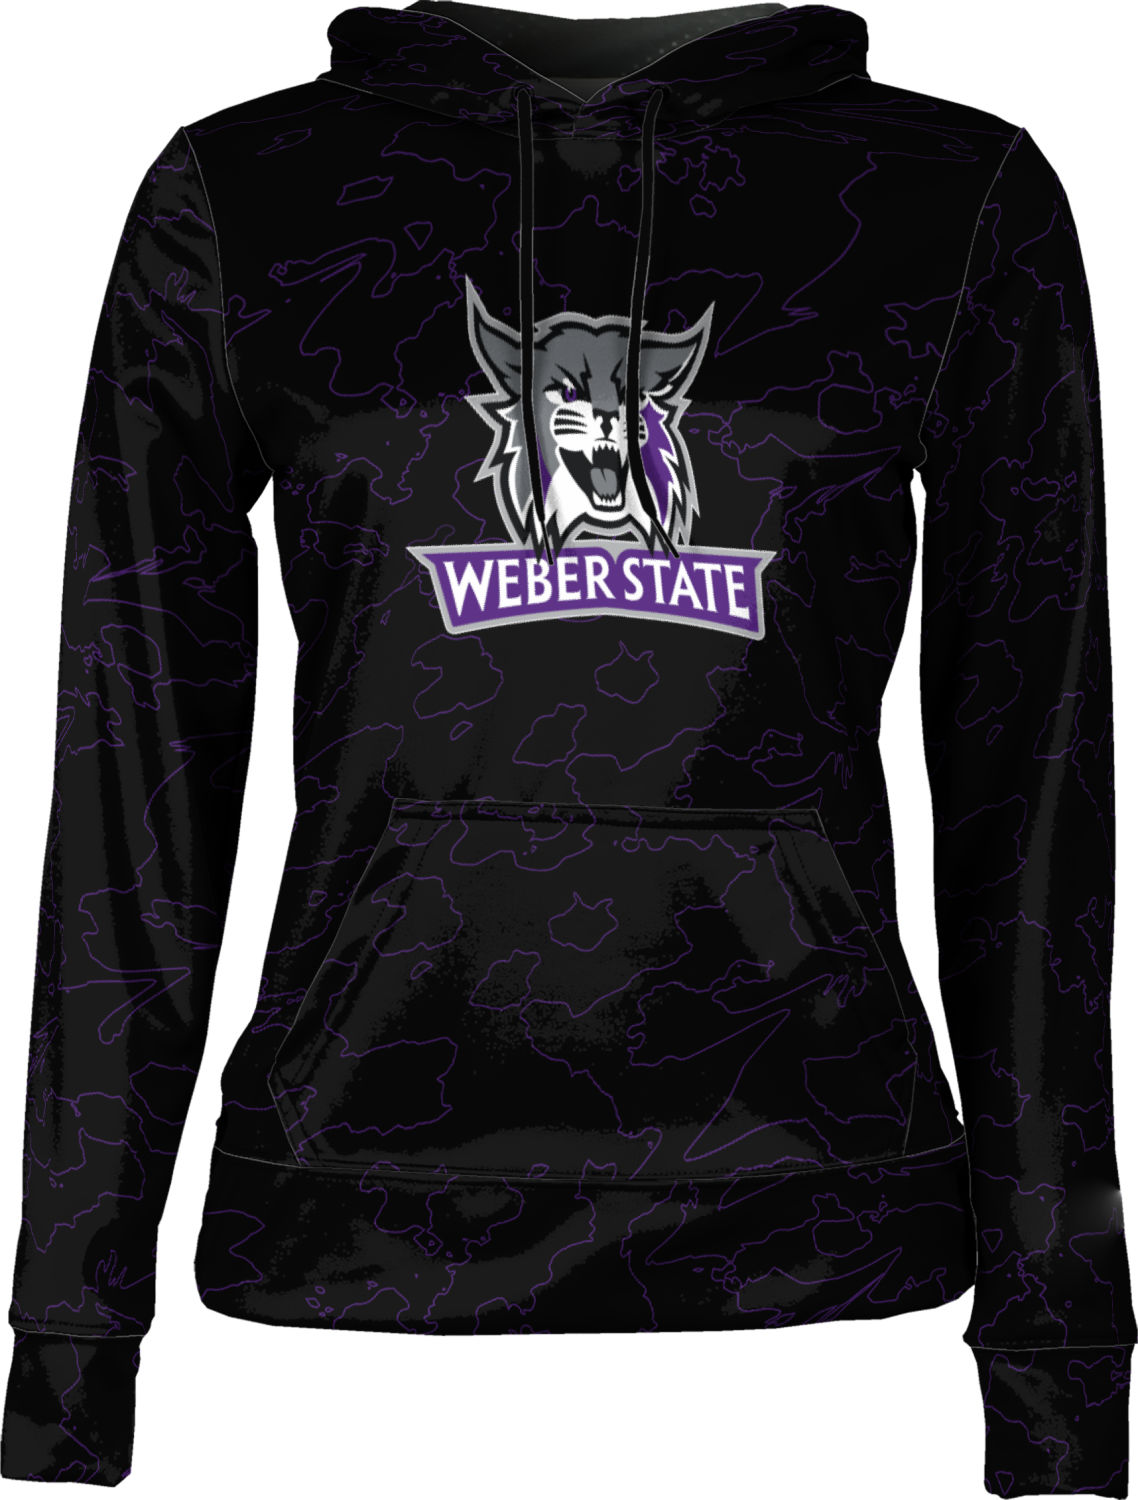 Weber State University: Women's Pullover Hoodie - Topography